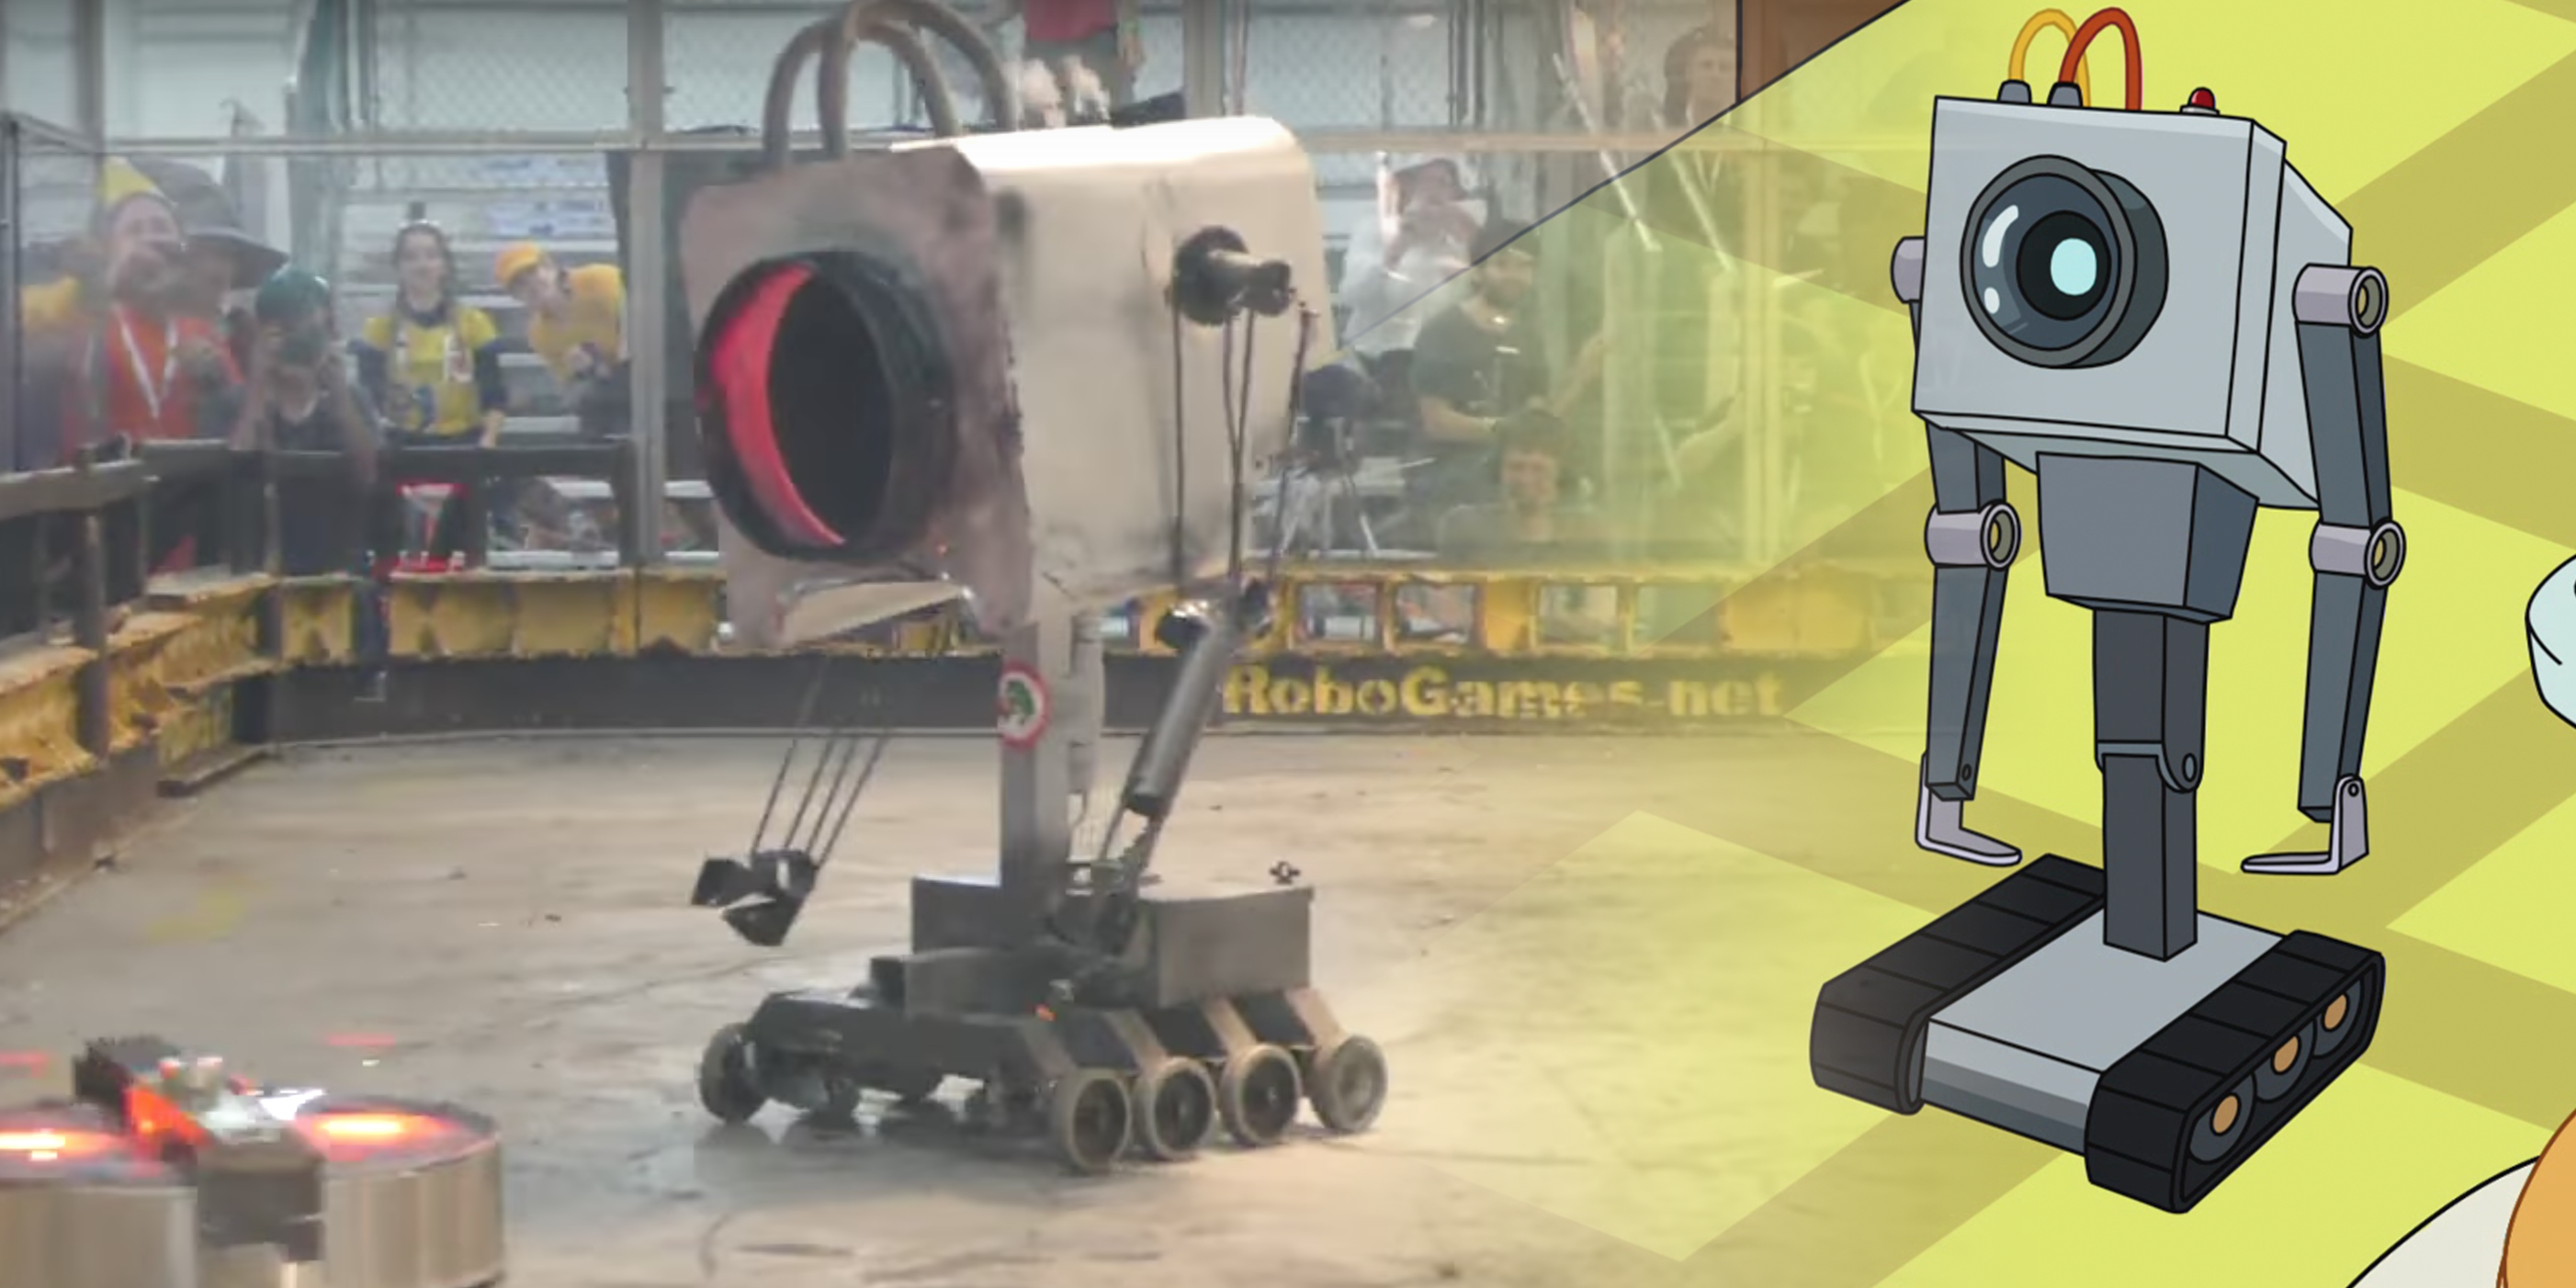 Watch a Real 'Rick and Morty' Butter Robot Fight to the